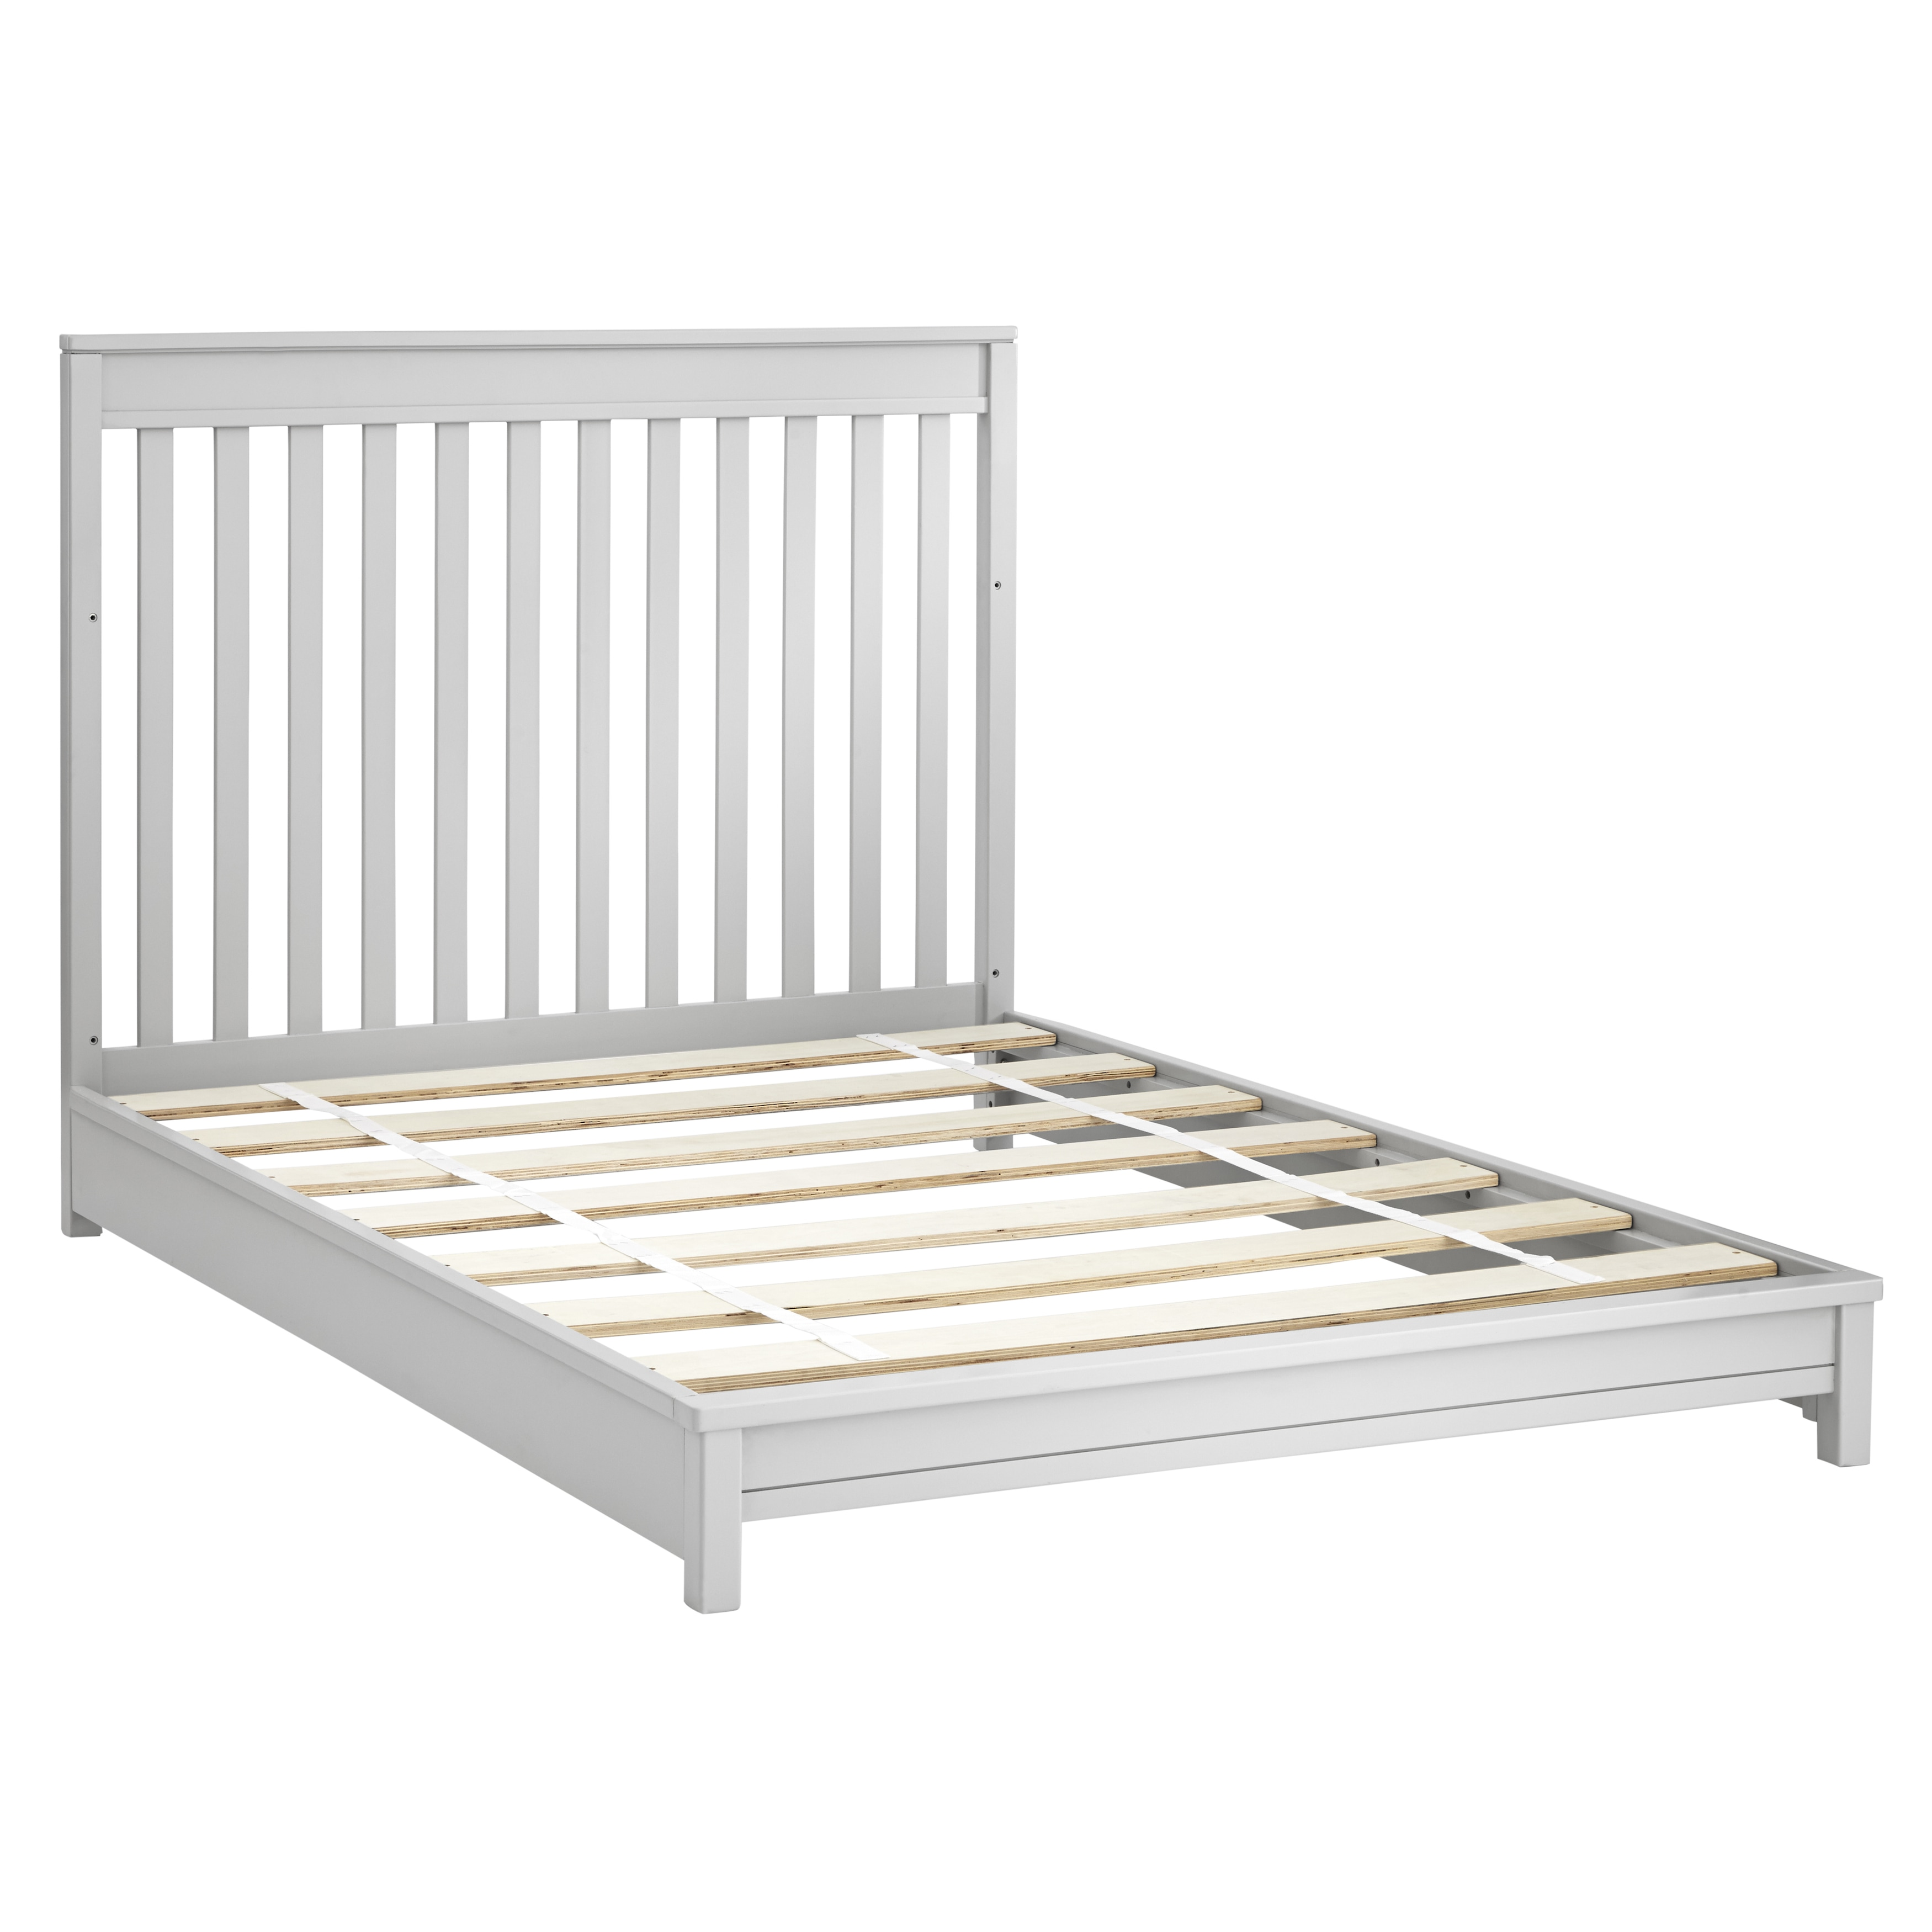 Sealy Bella Convertible Full Size Bed Rails and Slat Roll...